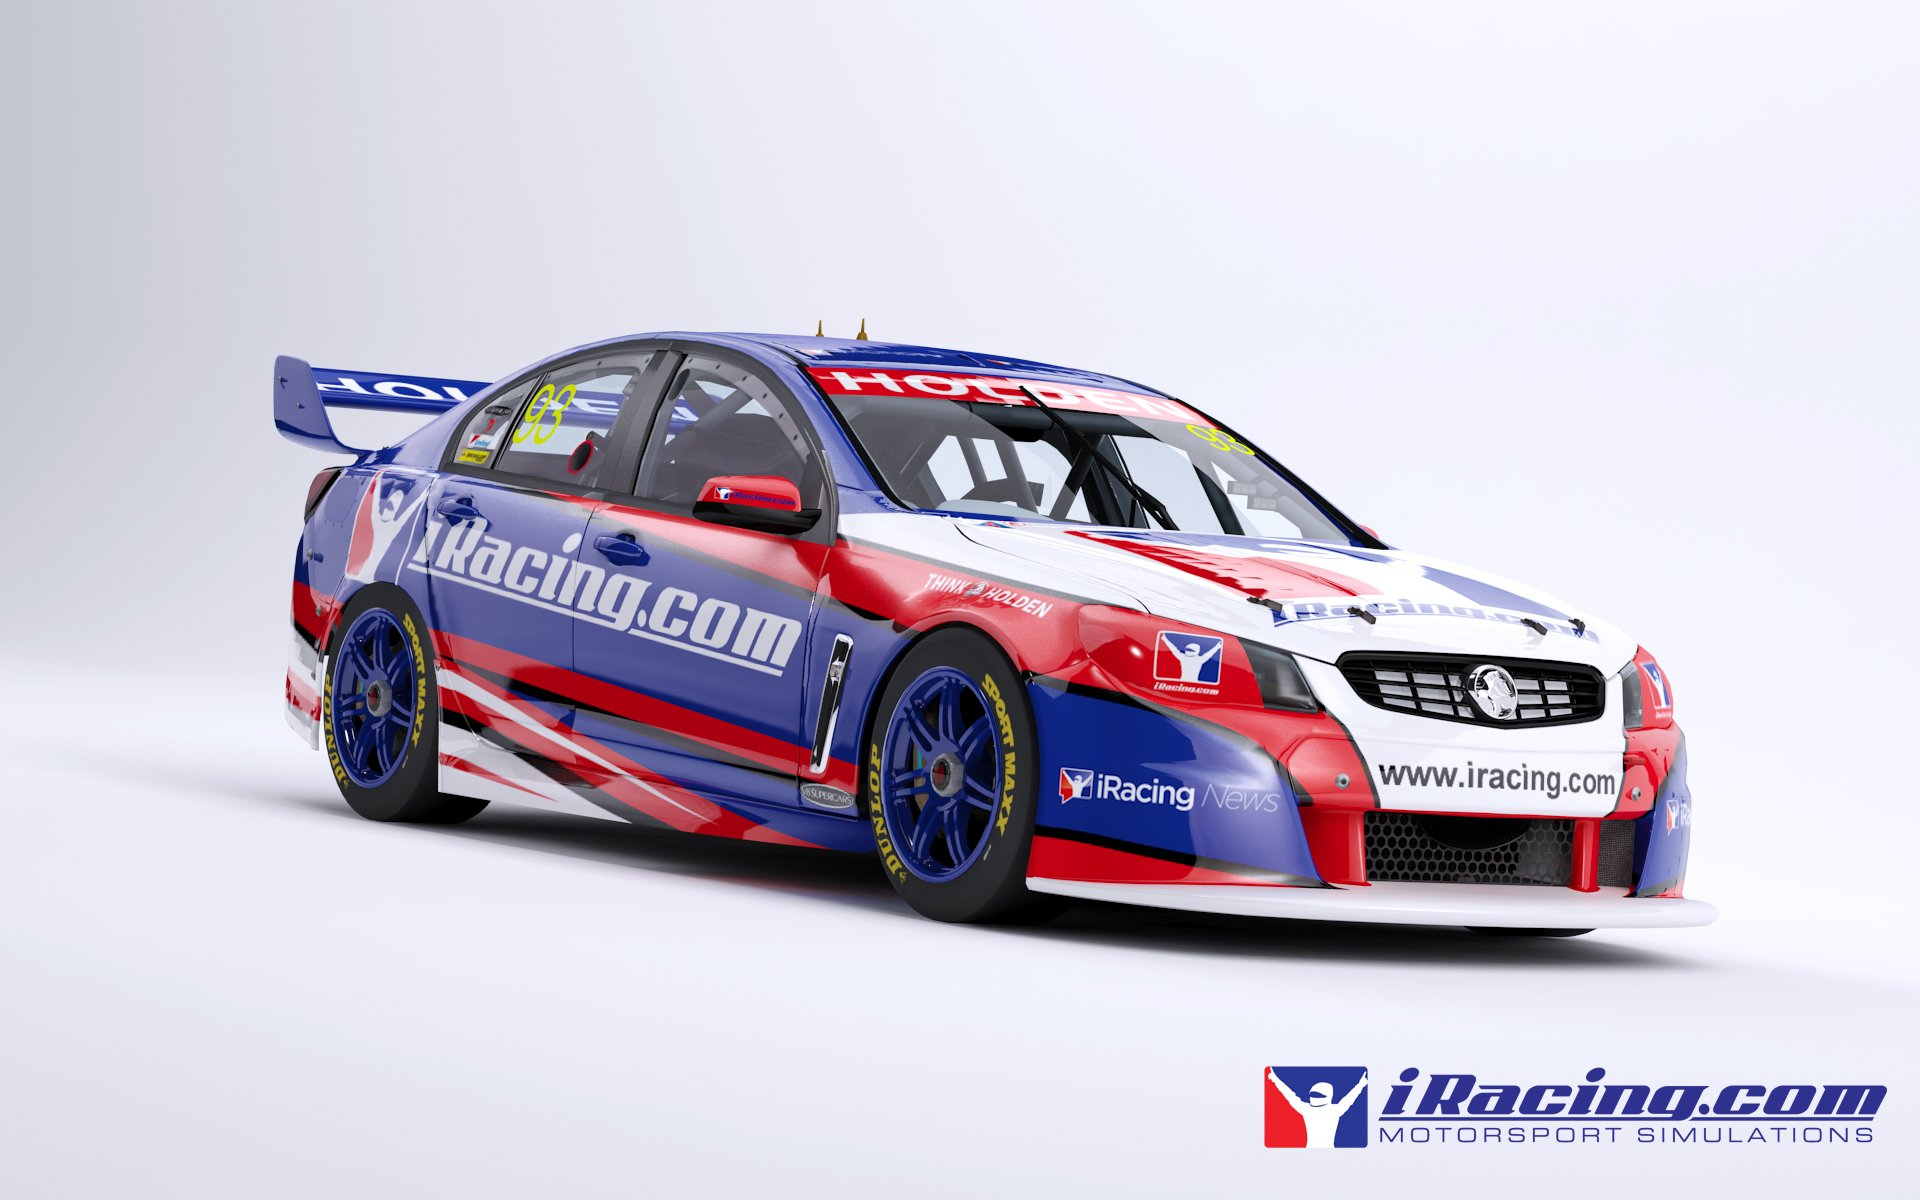 supercars bathurst 2017 with Iracing 2014 Season 4 Build Released on Craig Lowndes likewise Bathurst 1000 Great Race in addition The Big Picture Best Of Grid Girls 2013 together with Mostert Reveals Supercheap Auto Livery in addition 2015 V8 Supercars Teams And Drivers Social Media Guide.